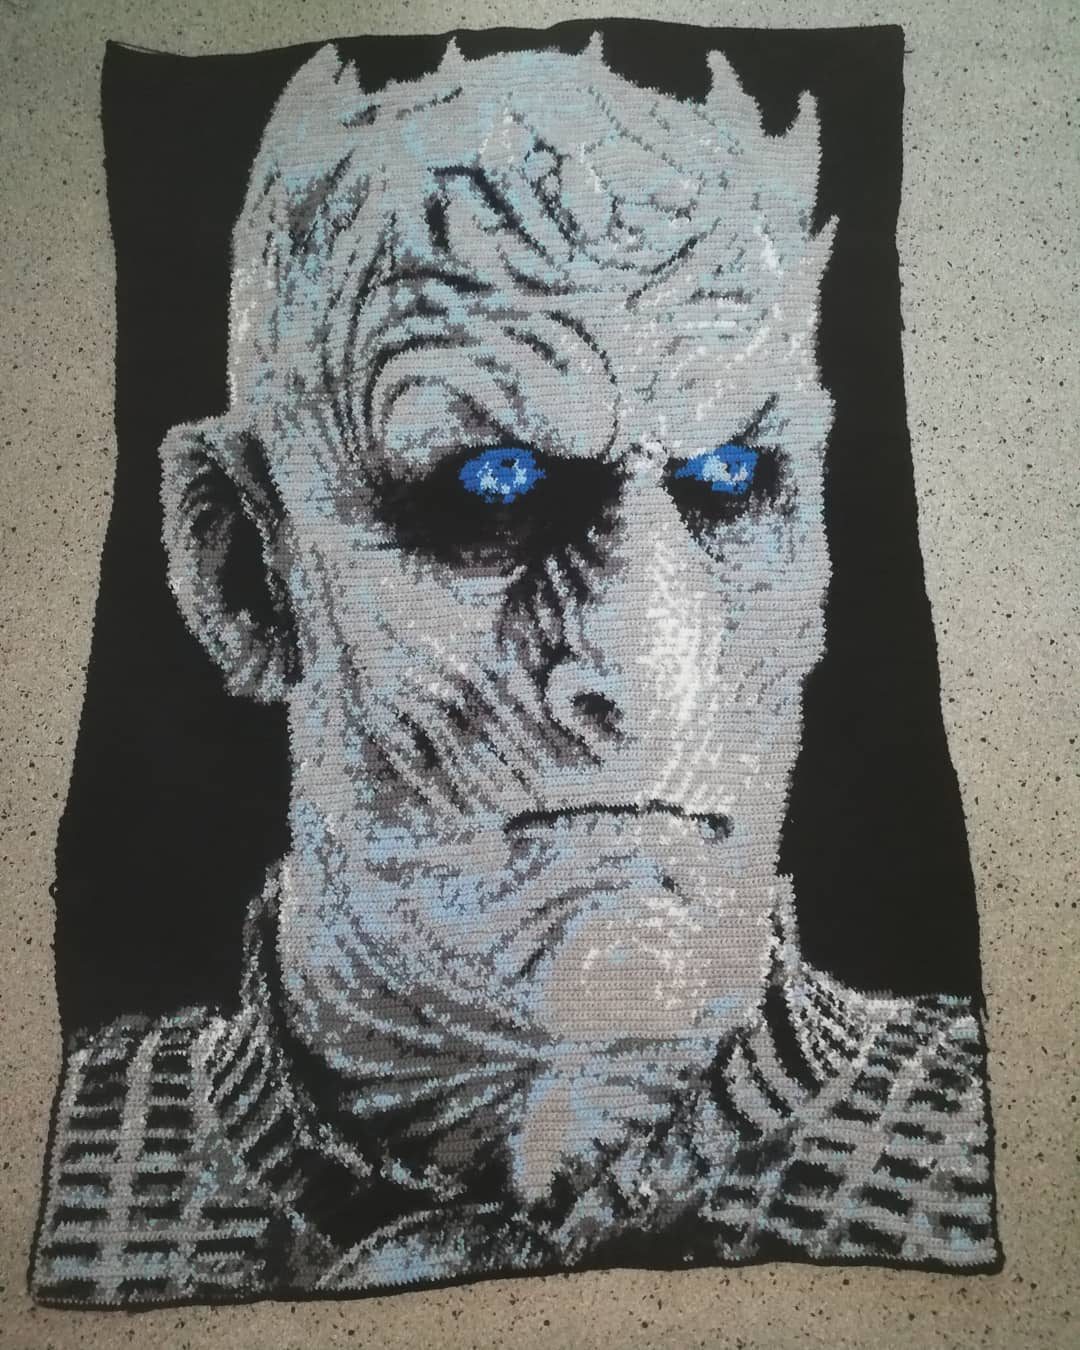 Game Of Thrones Fans, This One's For You! It Took 50,960 Stitches TO Crochet This Night King  Afghan ...